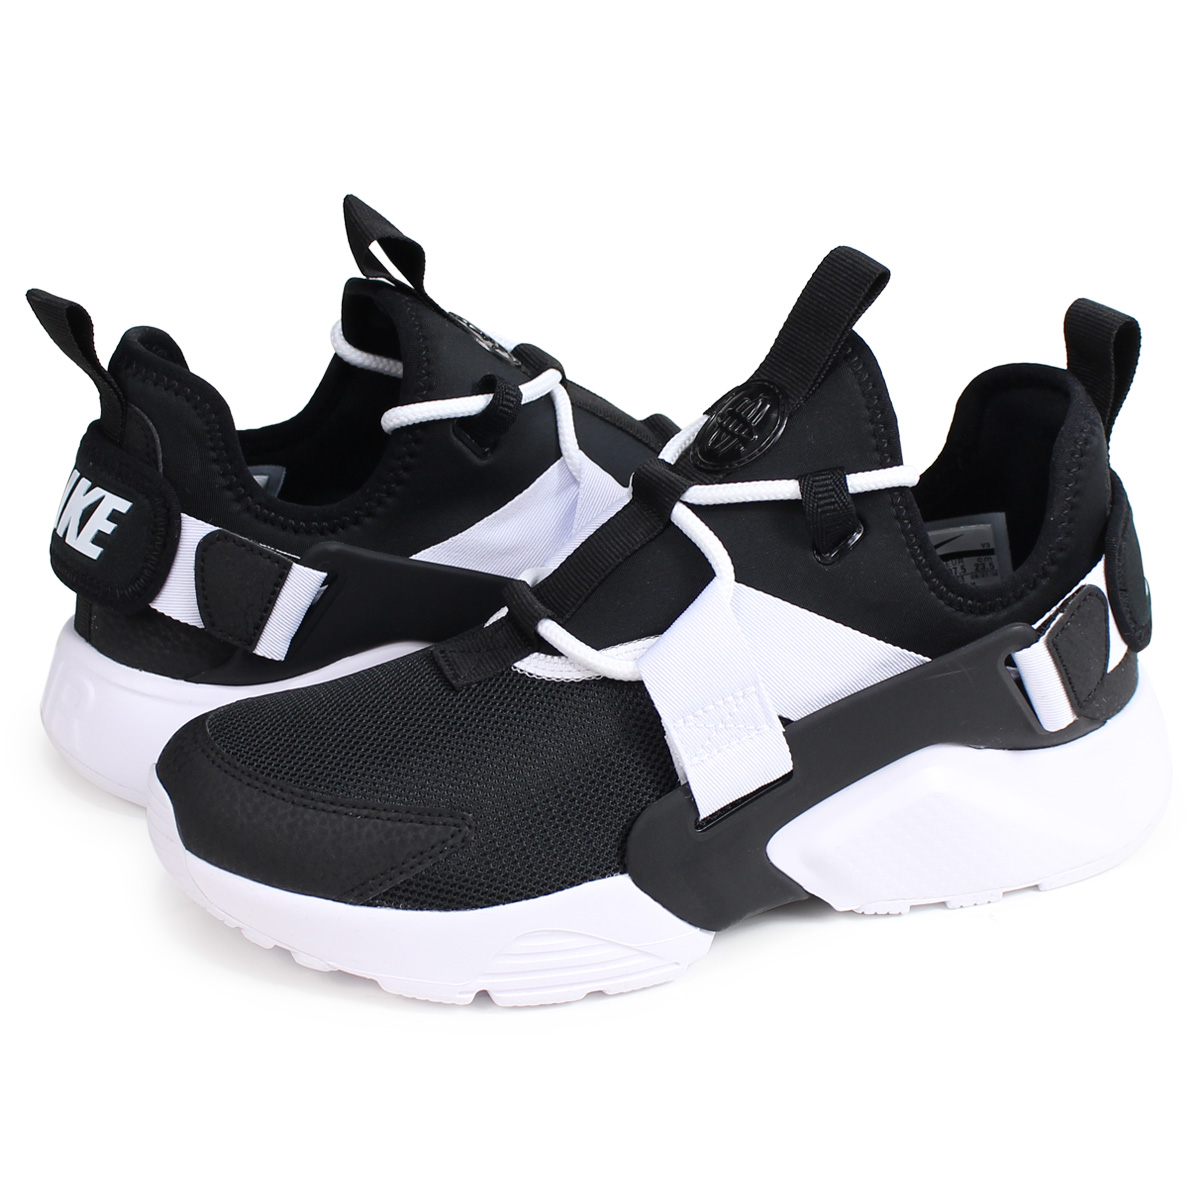 Nike NIKE エアハラチシティスニーカーレディースメンズ WMNS AIR HUARACHE CITY LOW black AH6804-002   load planned Shinnyu load in reservation product 2 14 ... a9b2f41ca